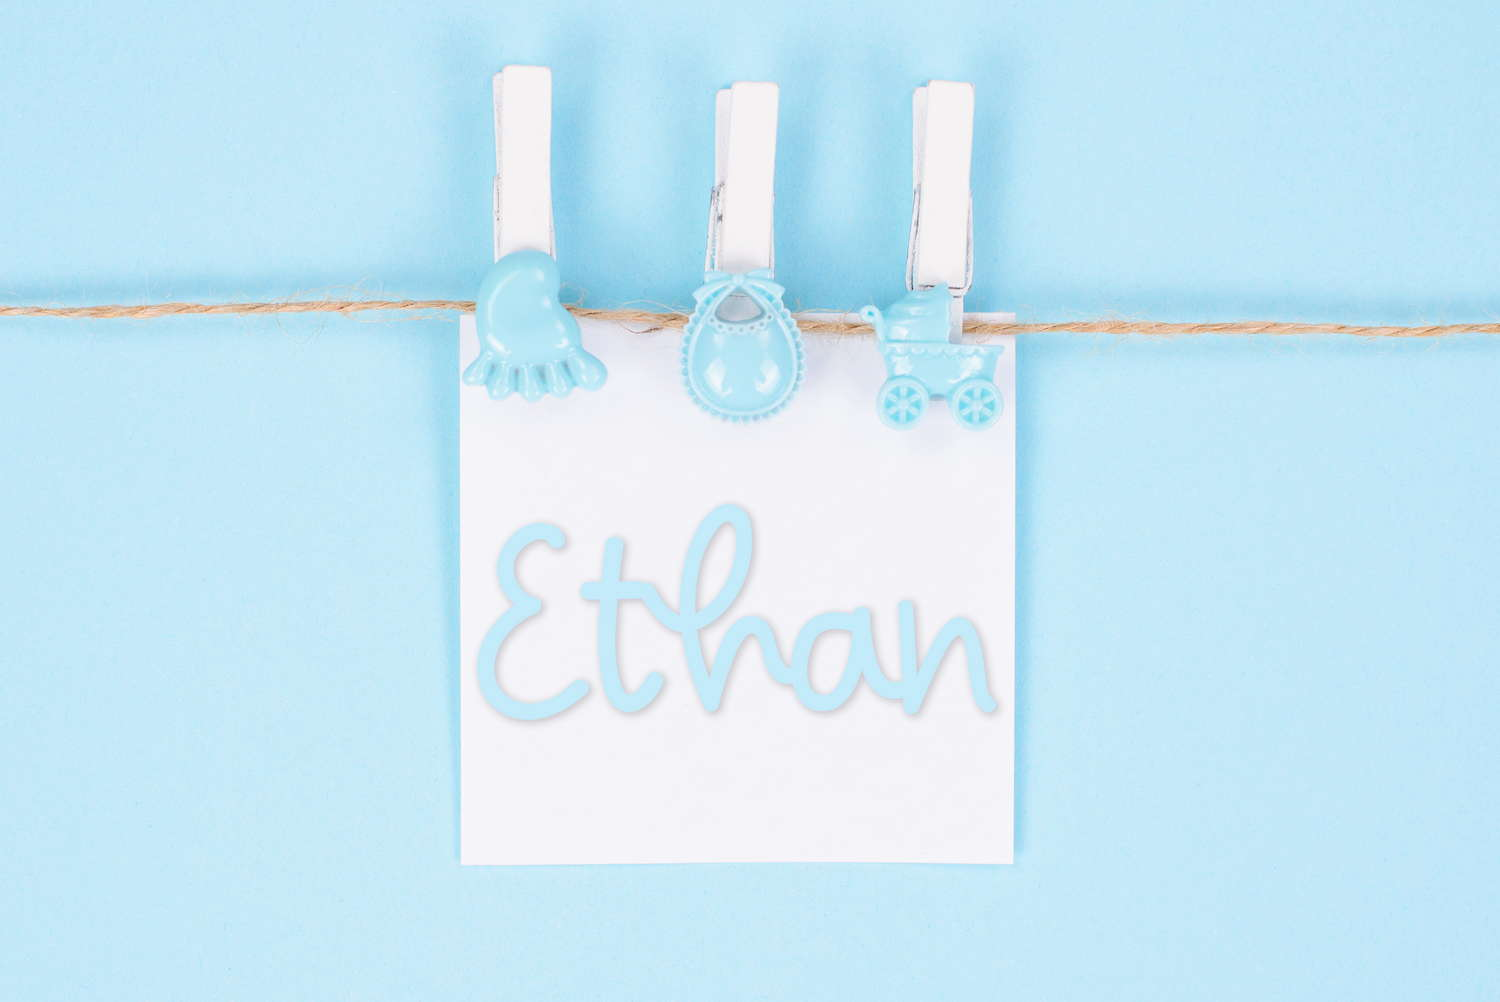 Ethan Baby Name